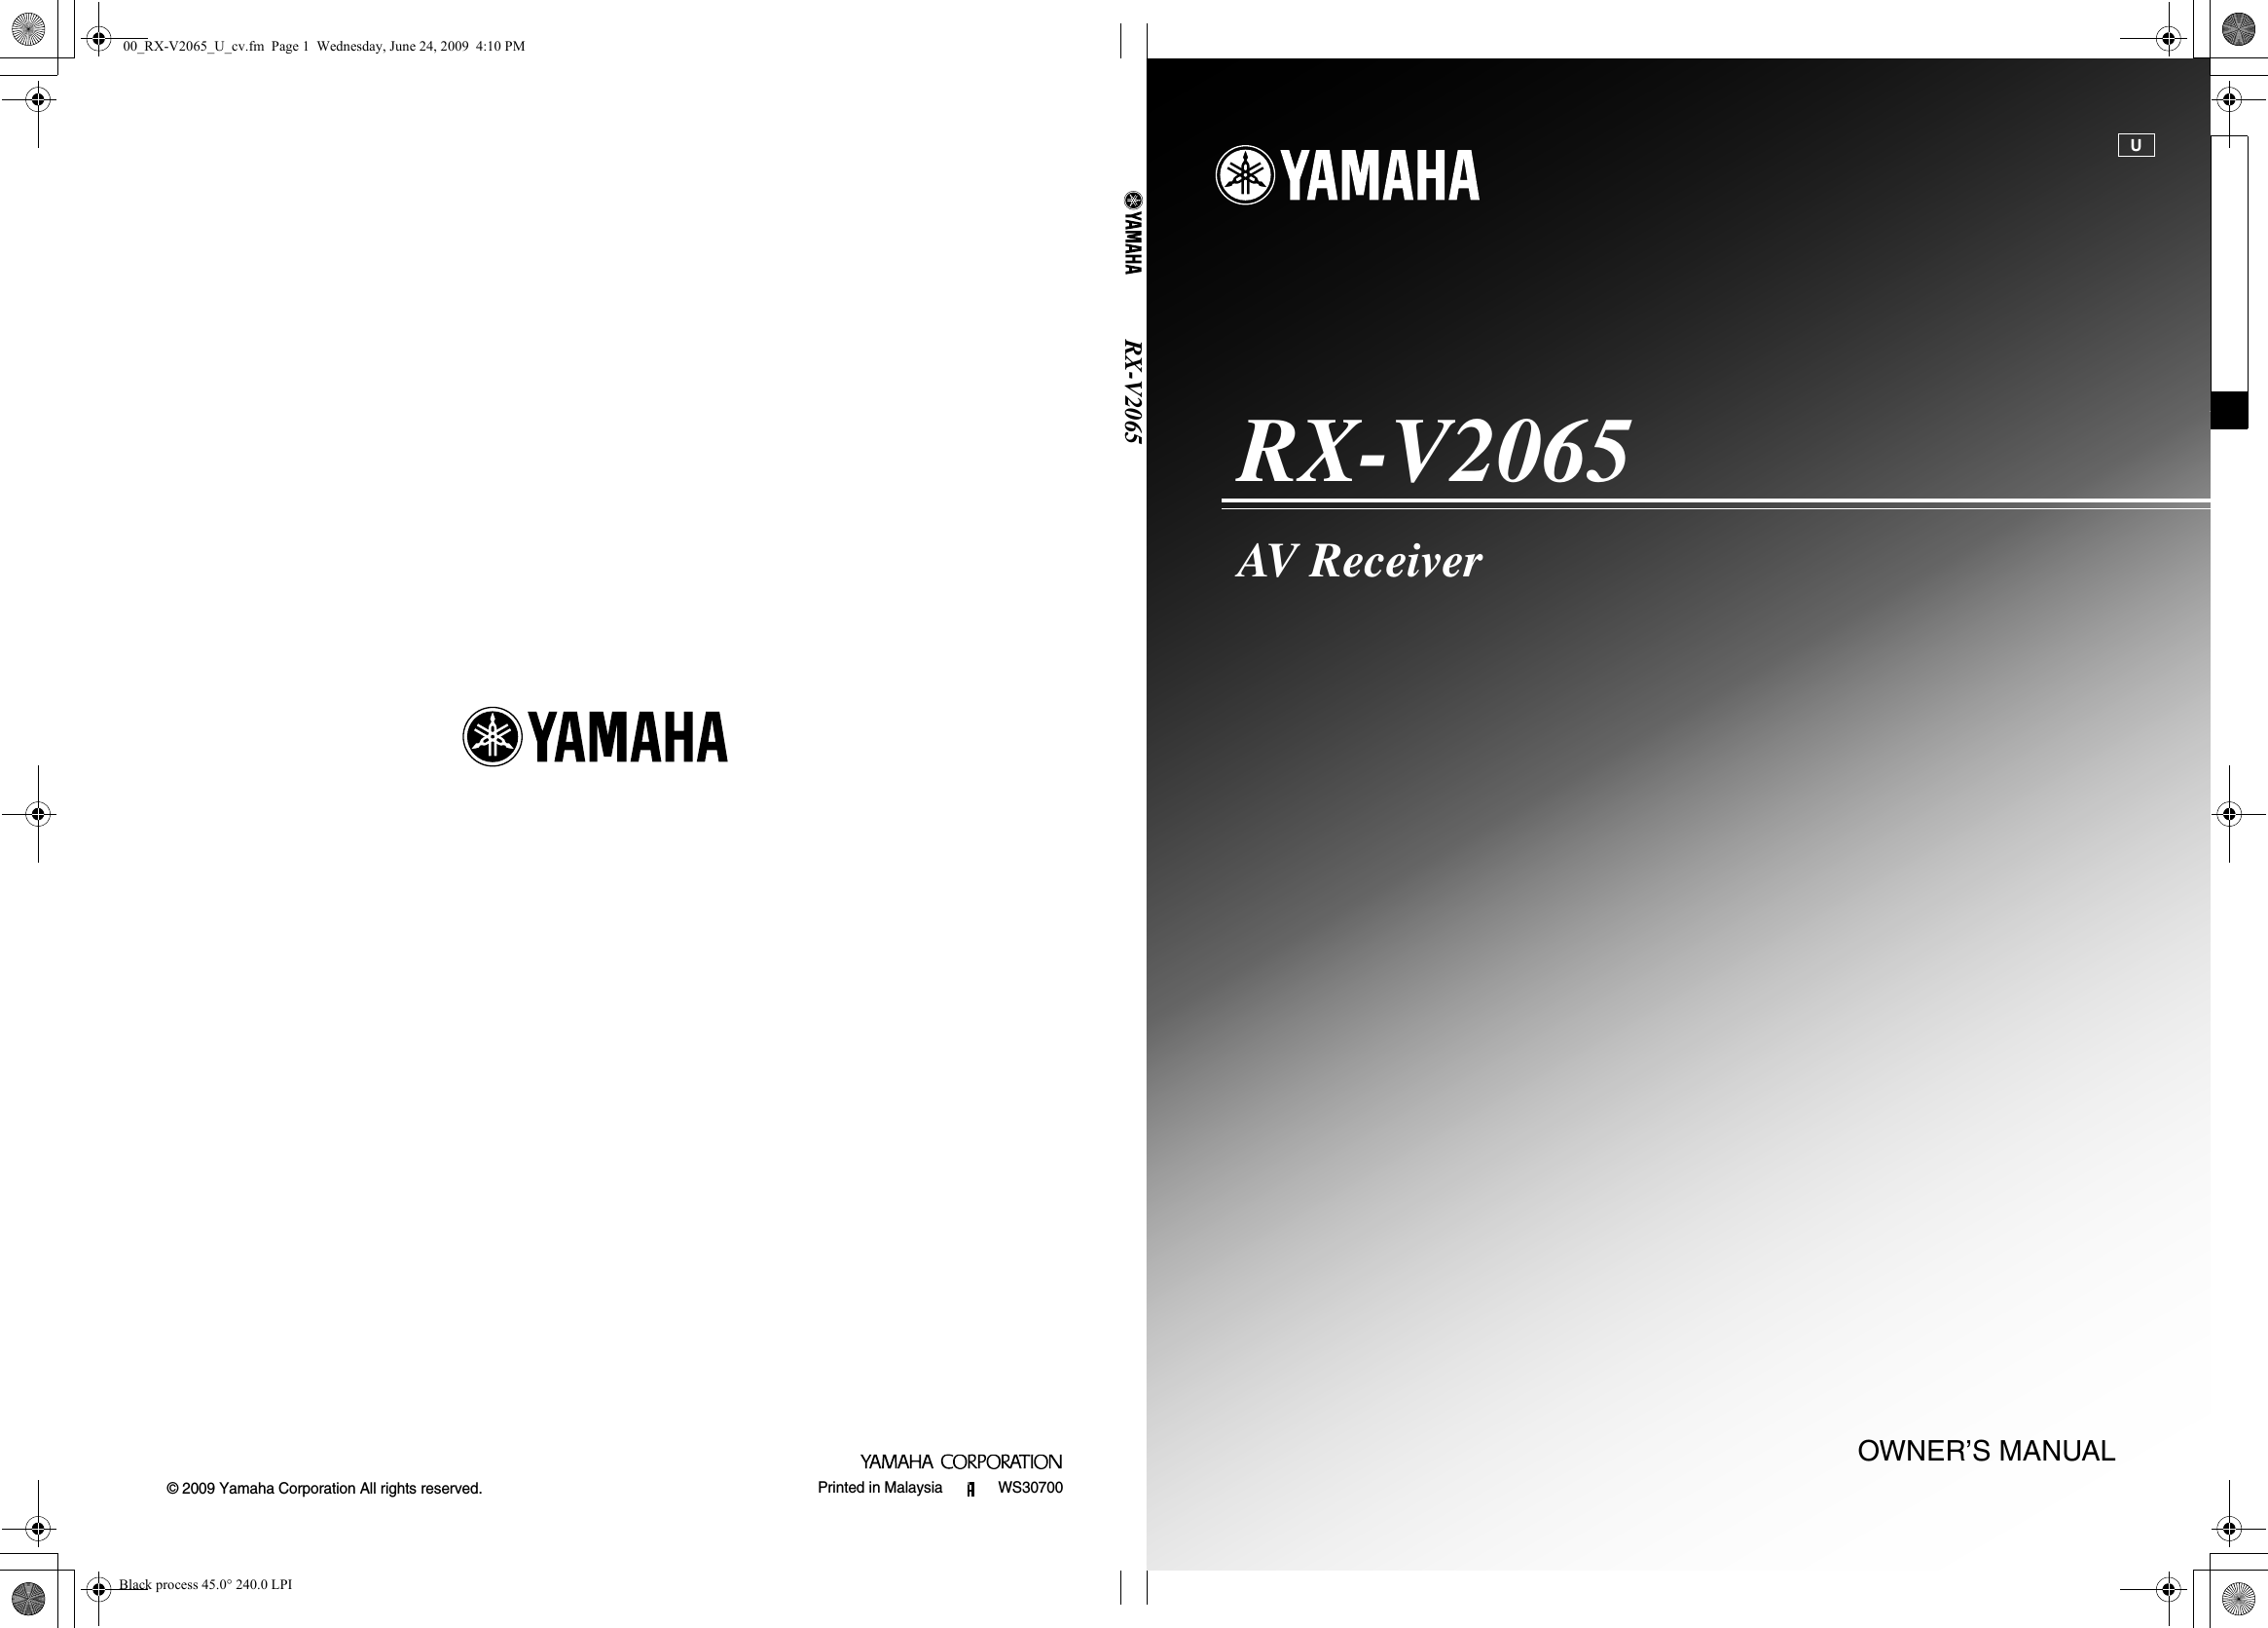 Yamaha Rx V2065 Owners Manual U Cd 4013 Toggle Switch Design Trick 1 Electronics Hobby